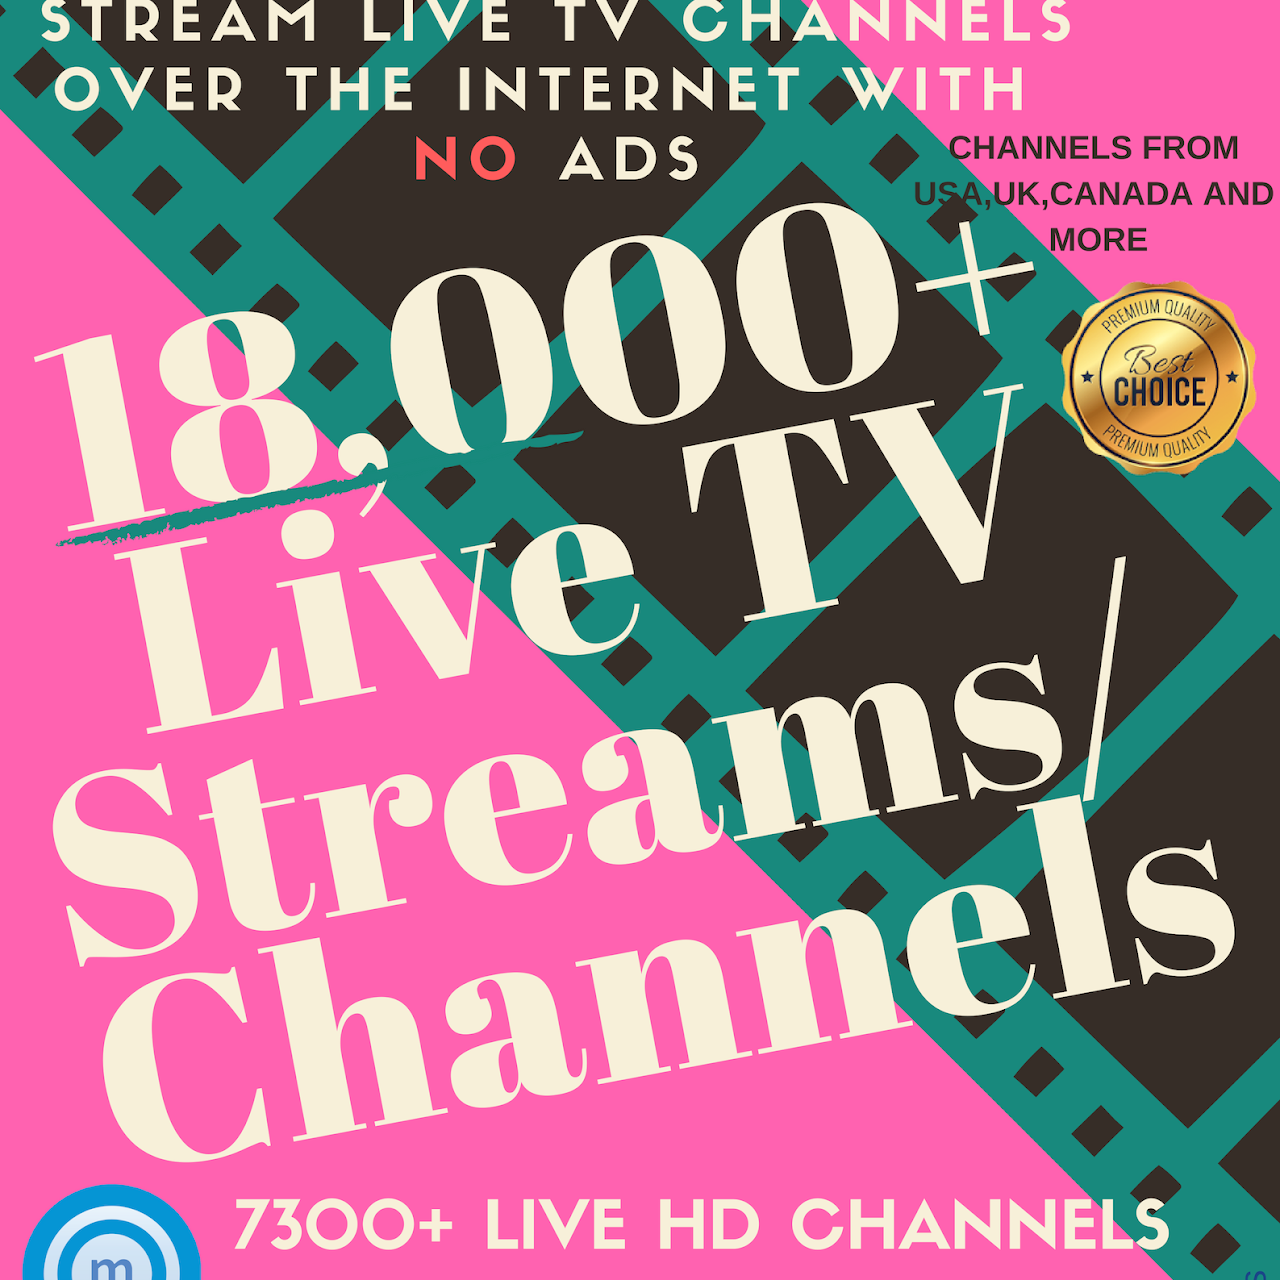 Premium IPTV - Live Internet TV from over 38 countries world